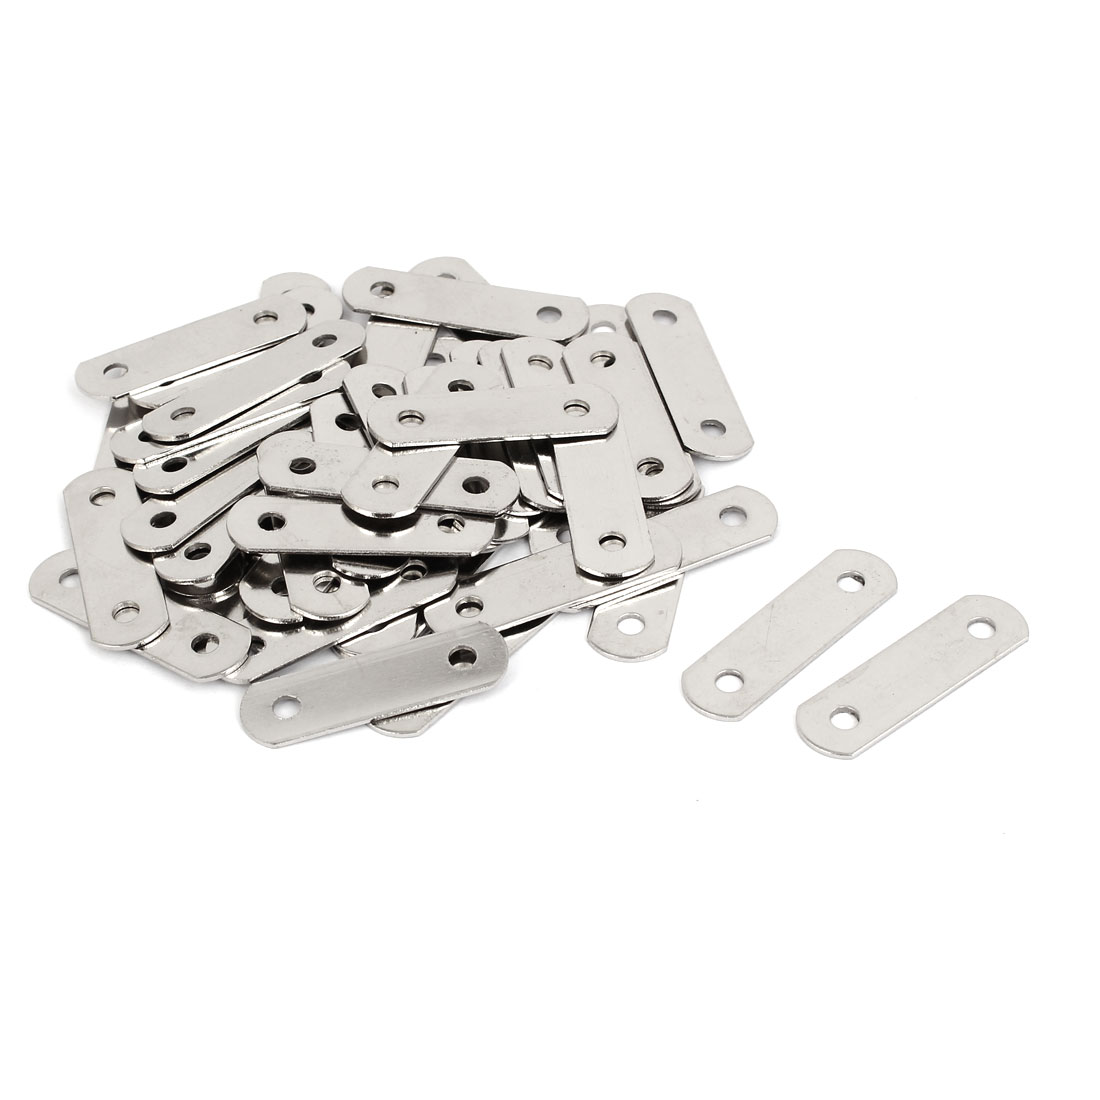 34.5mm x 10mm Flat Fixing Joining Corner Brackets Mending Repair Plates 50PCS